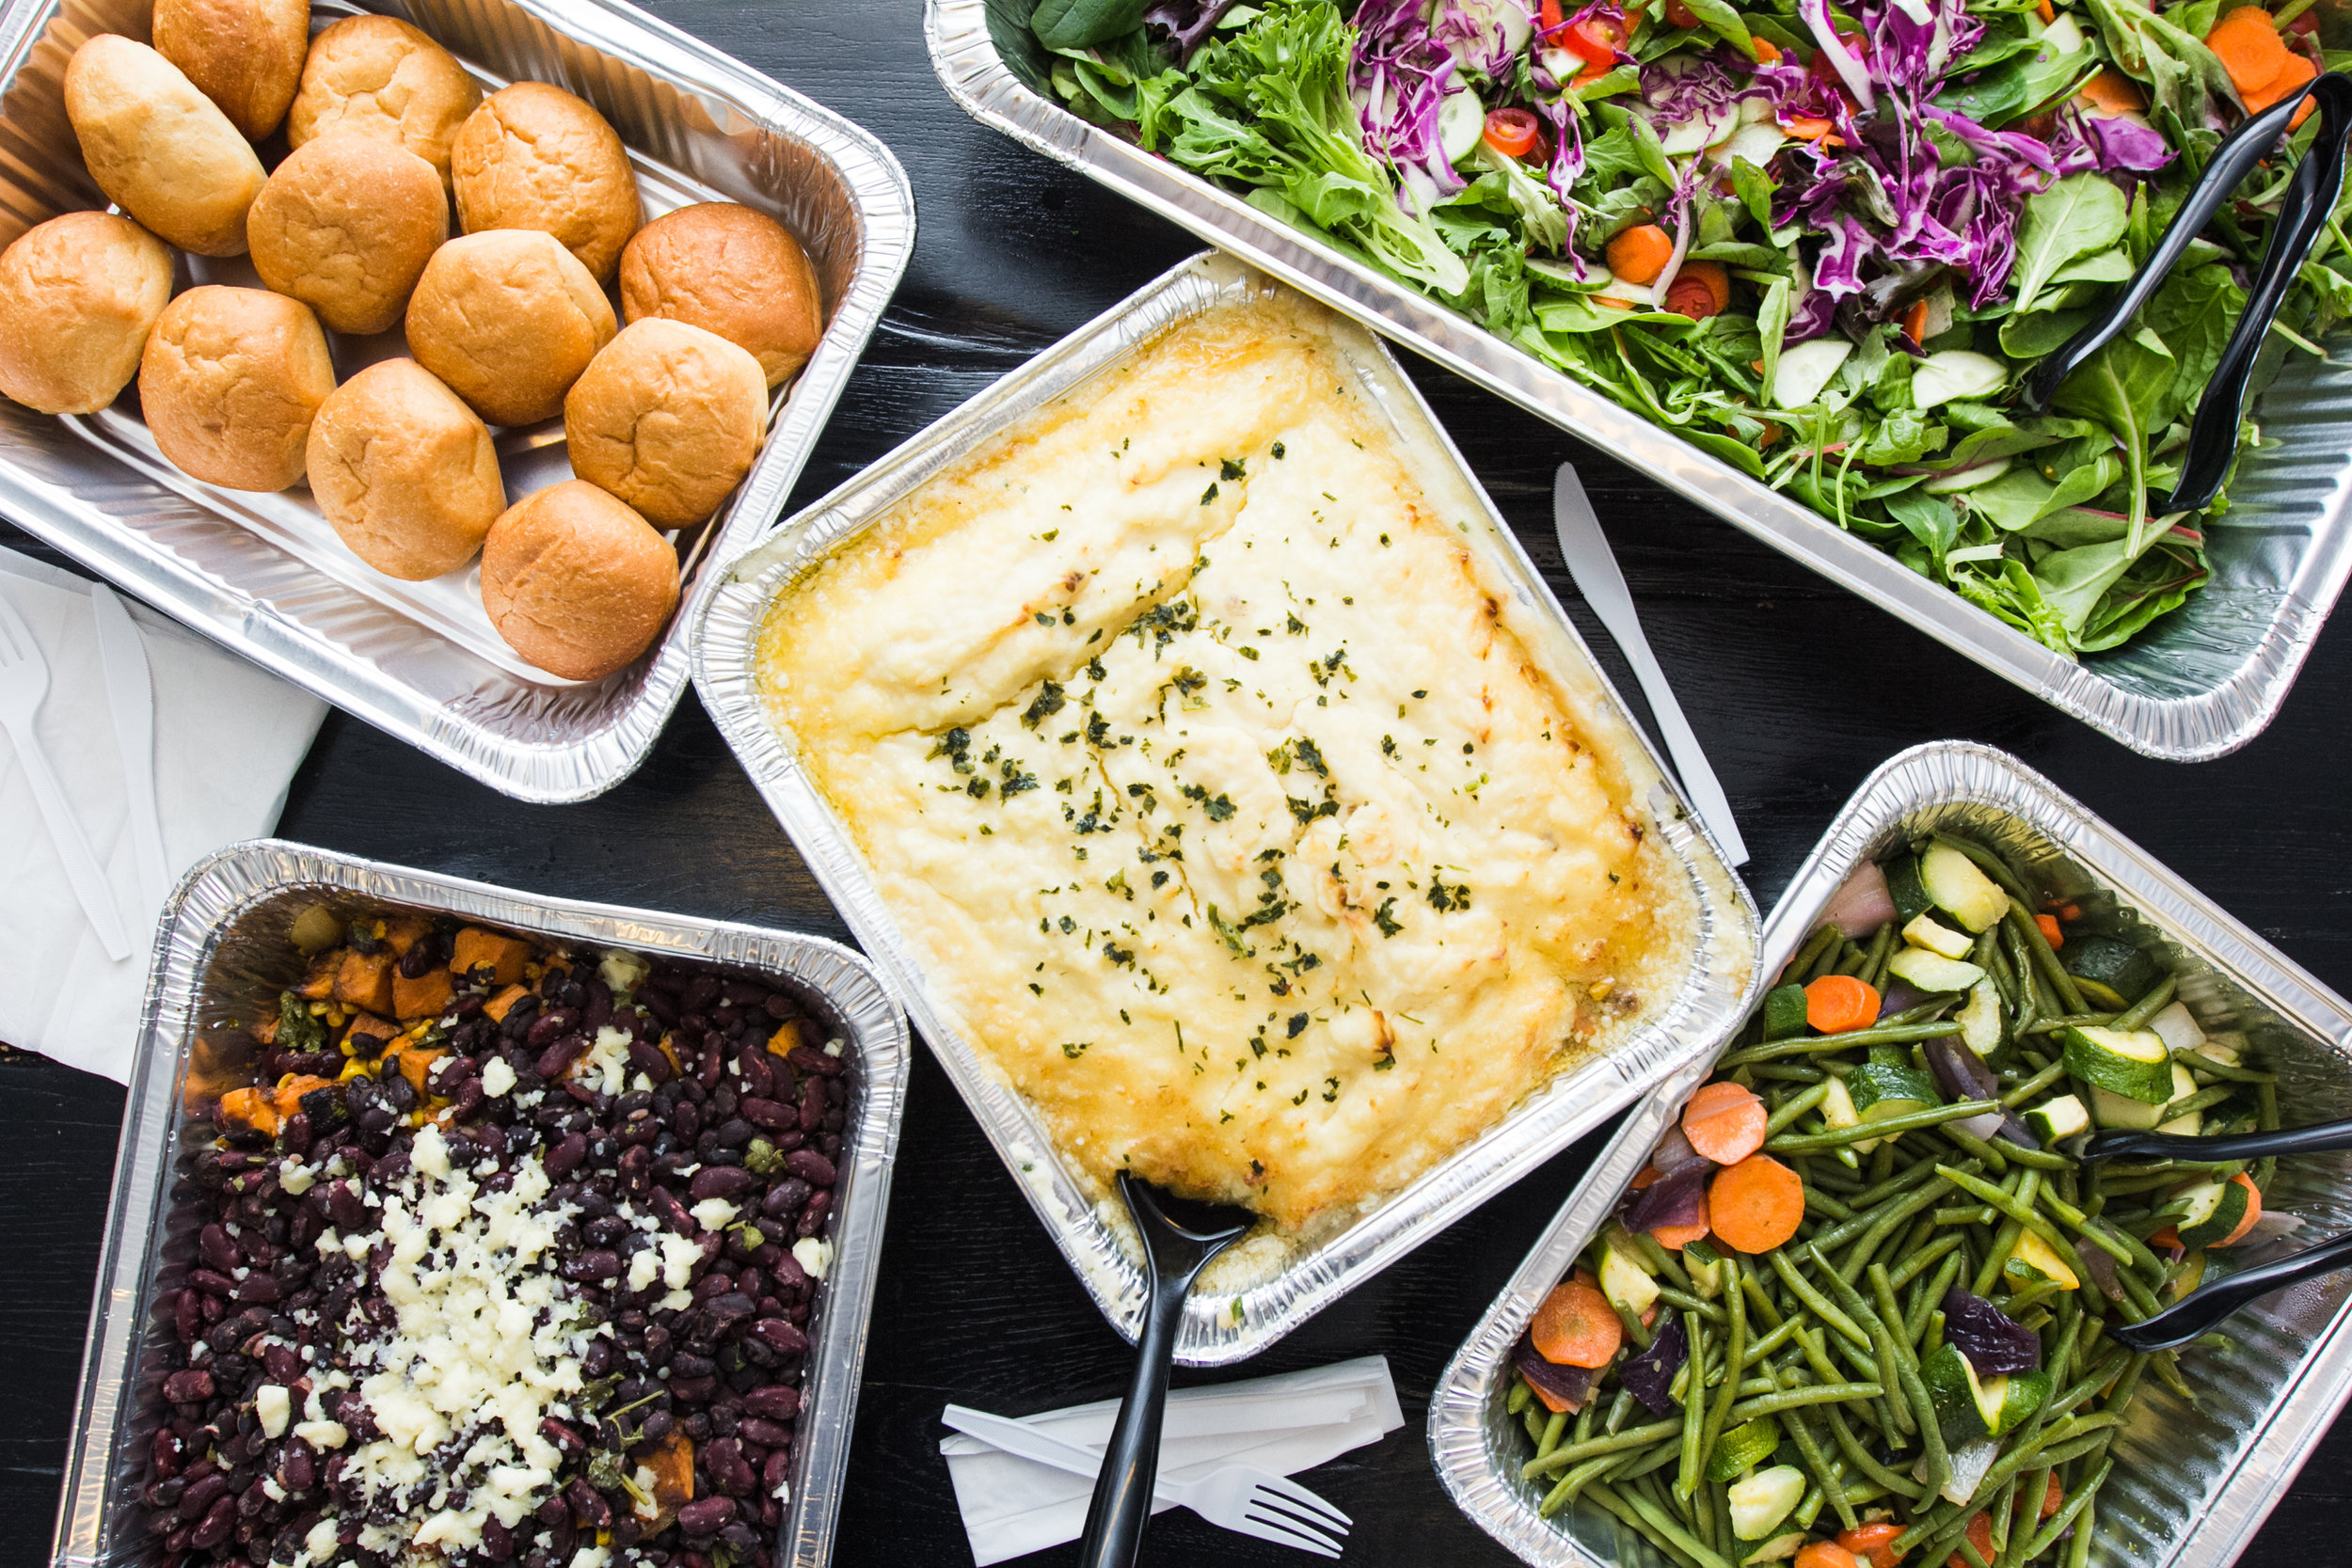 St. Patrick's Day Feast - [Star Catering Austin]